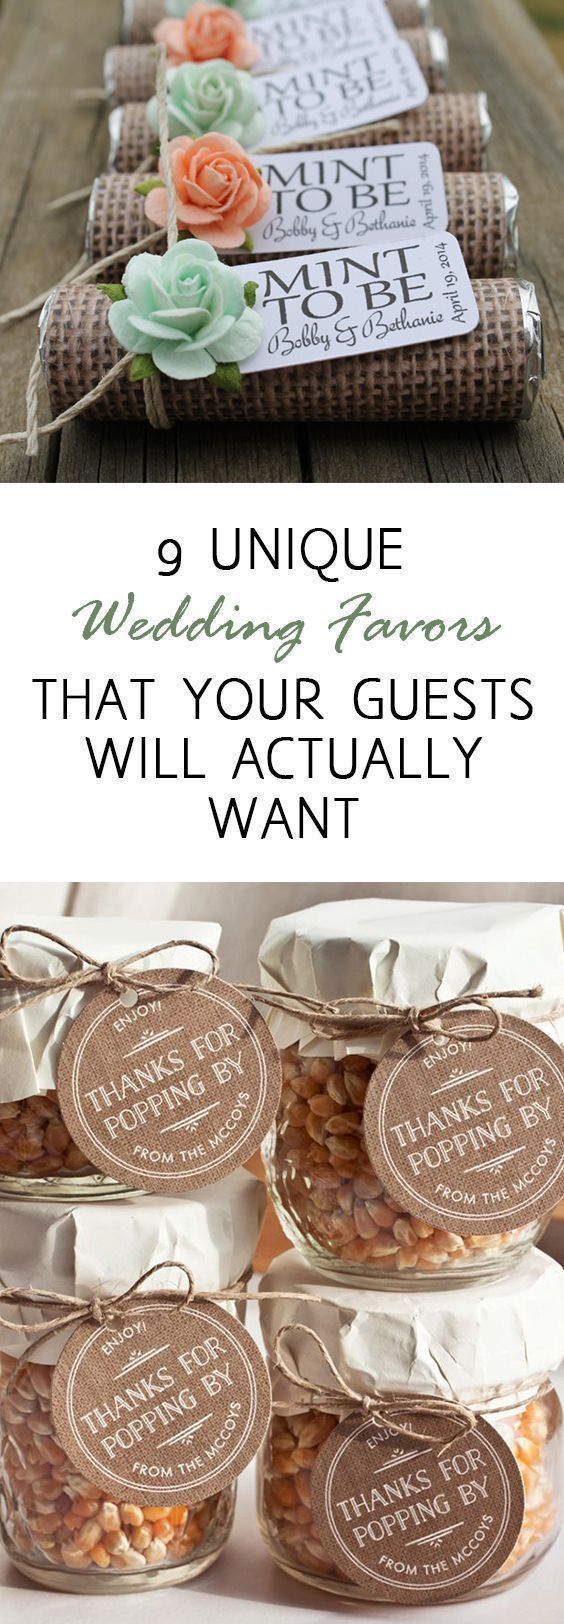 Best 25 personalized wedding favors ideas on pinterest wedding wedding favors wedding favor ideas diy wedding favors frugal wedding schedules popular junglespirit Image collections